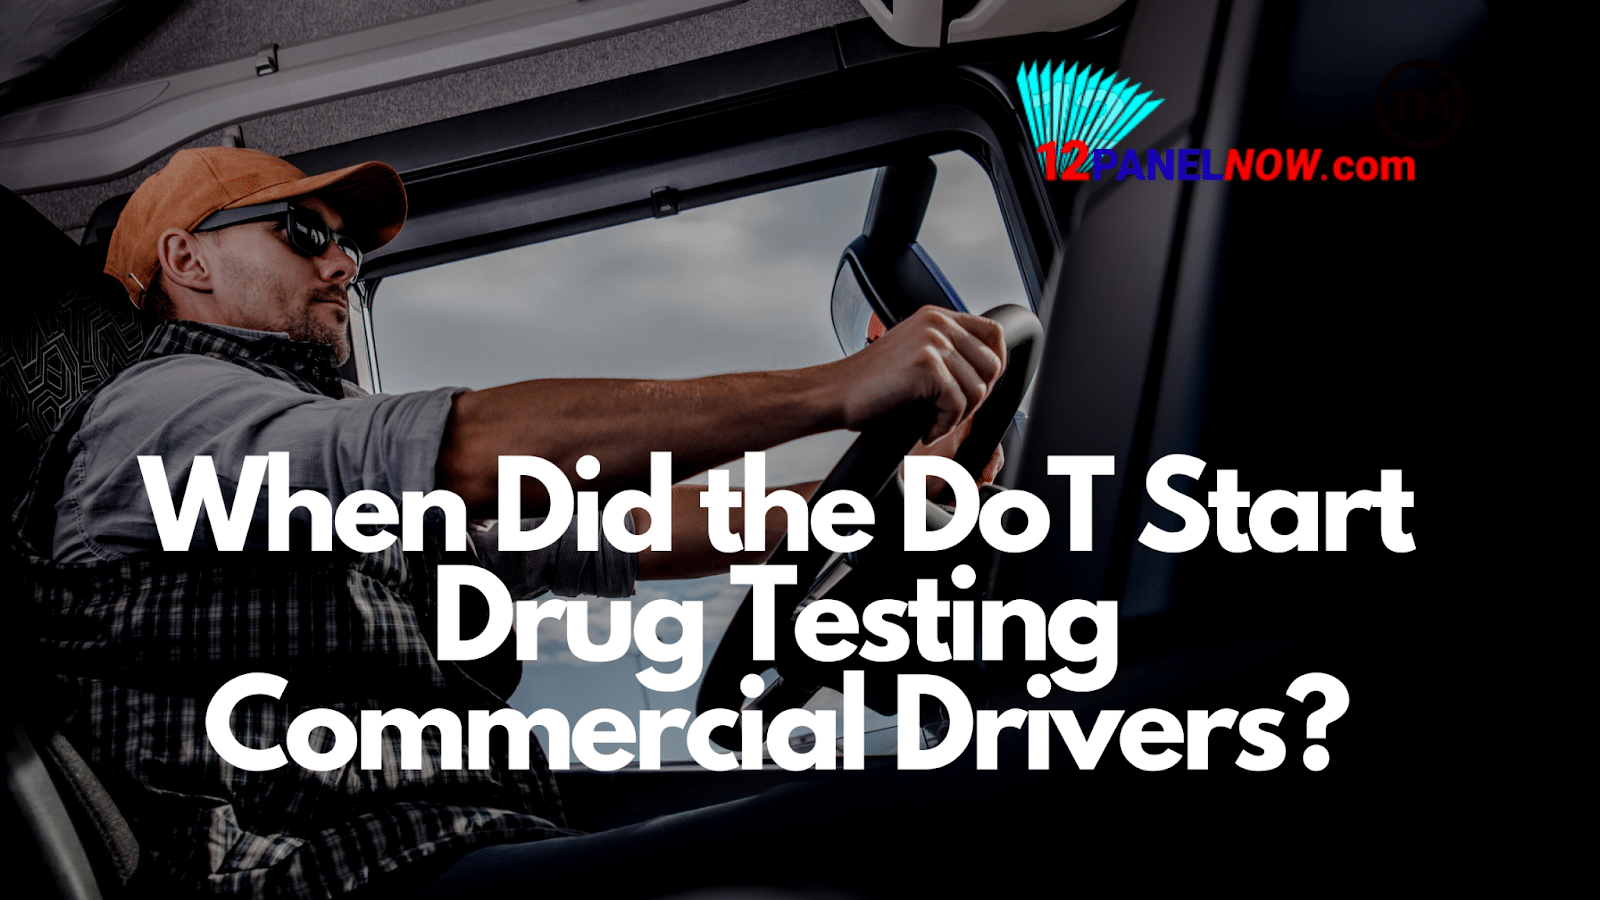 When Did the DoT Start Drug Testing Commercial Drivers?